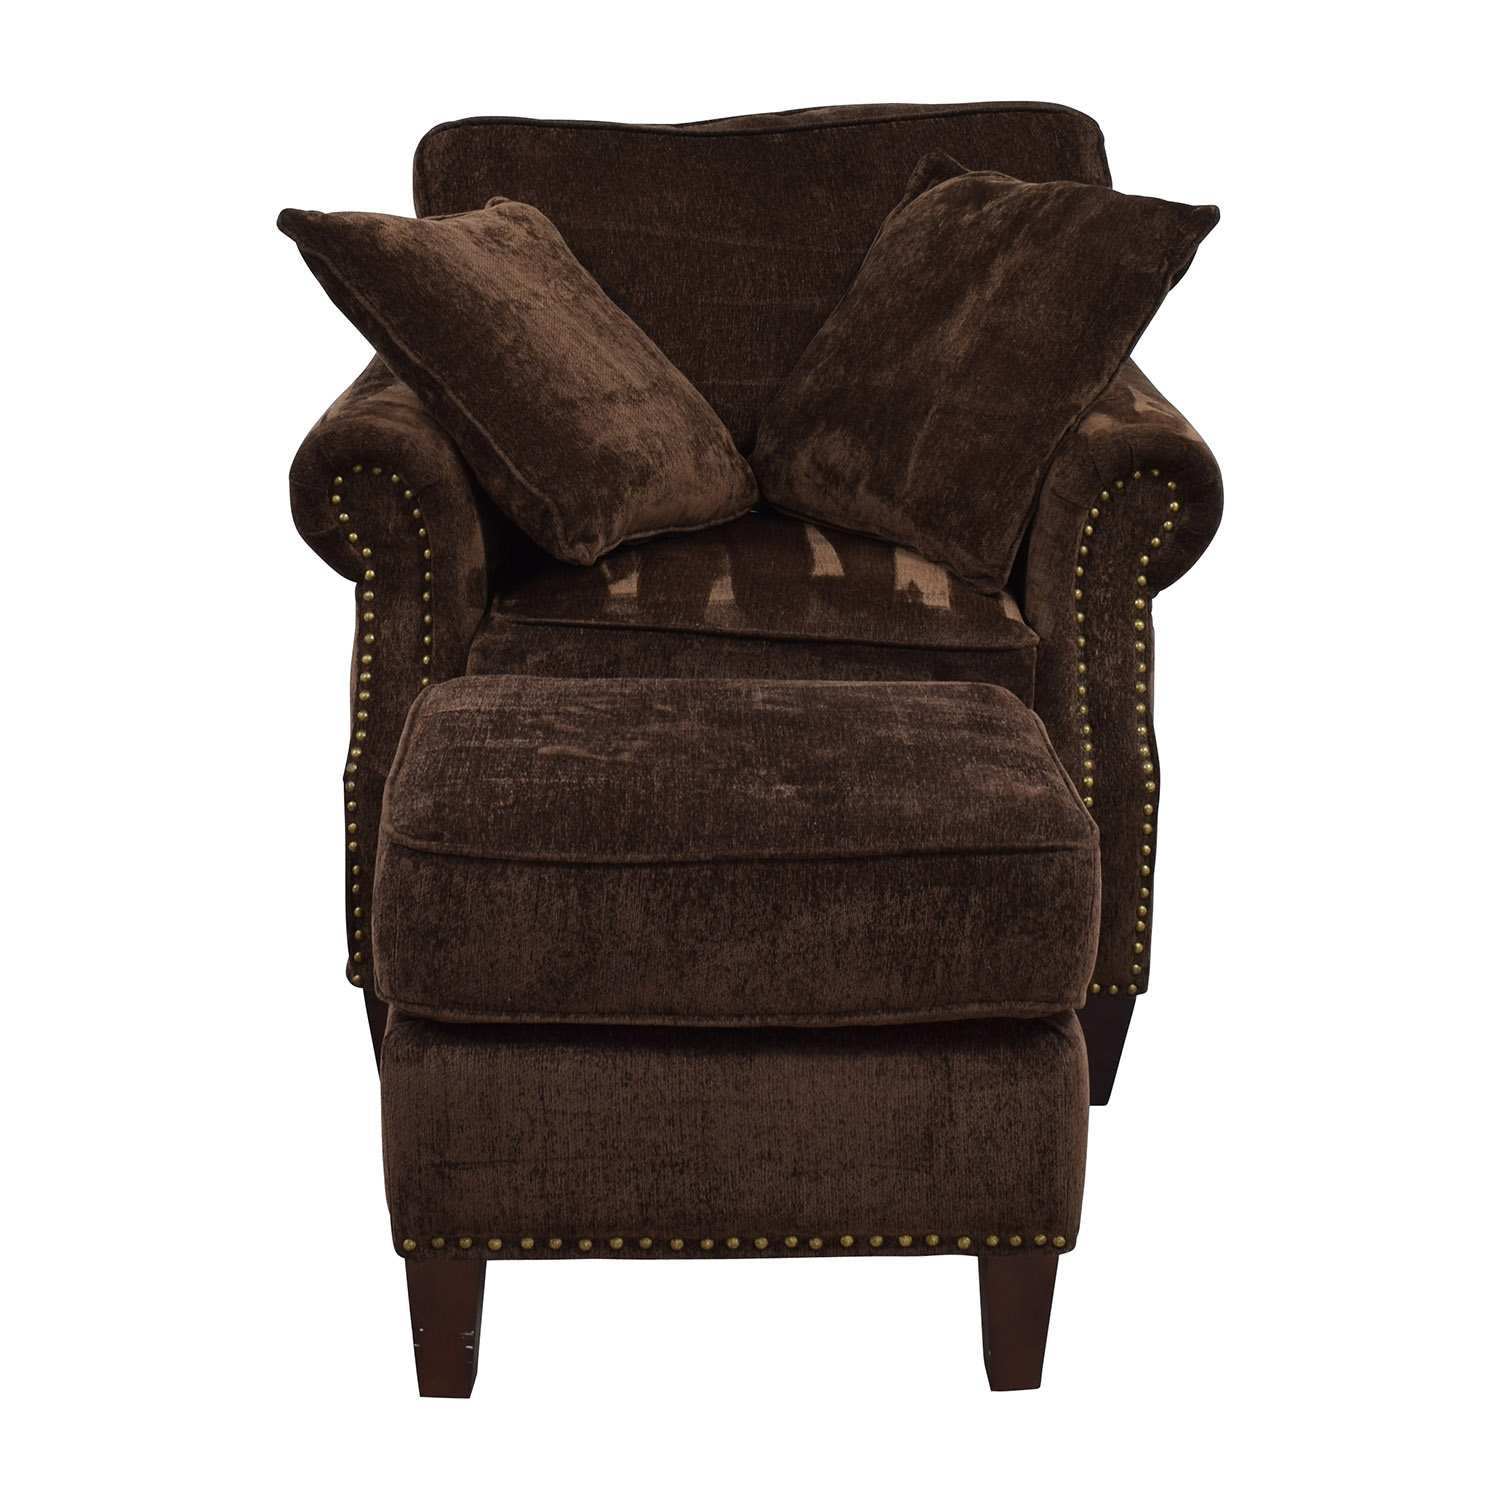 Bobs Furniture Bobs Furniture Mirage Studded Brown Sofa Chair and Ottoman used